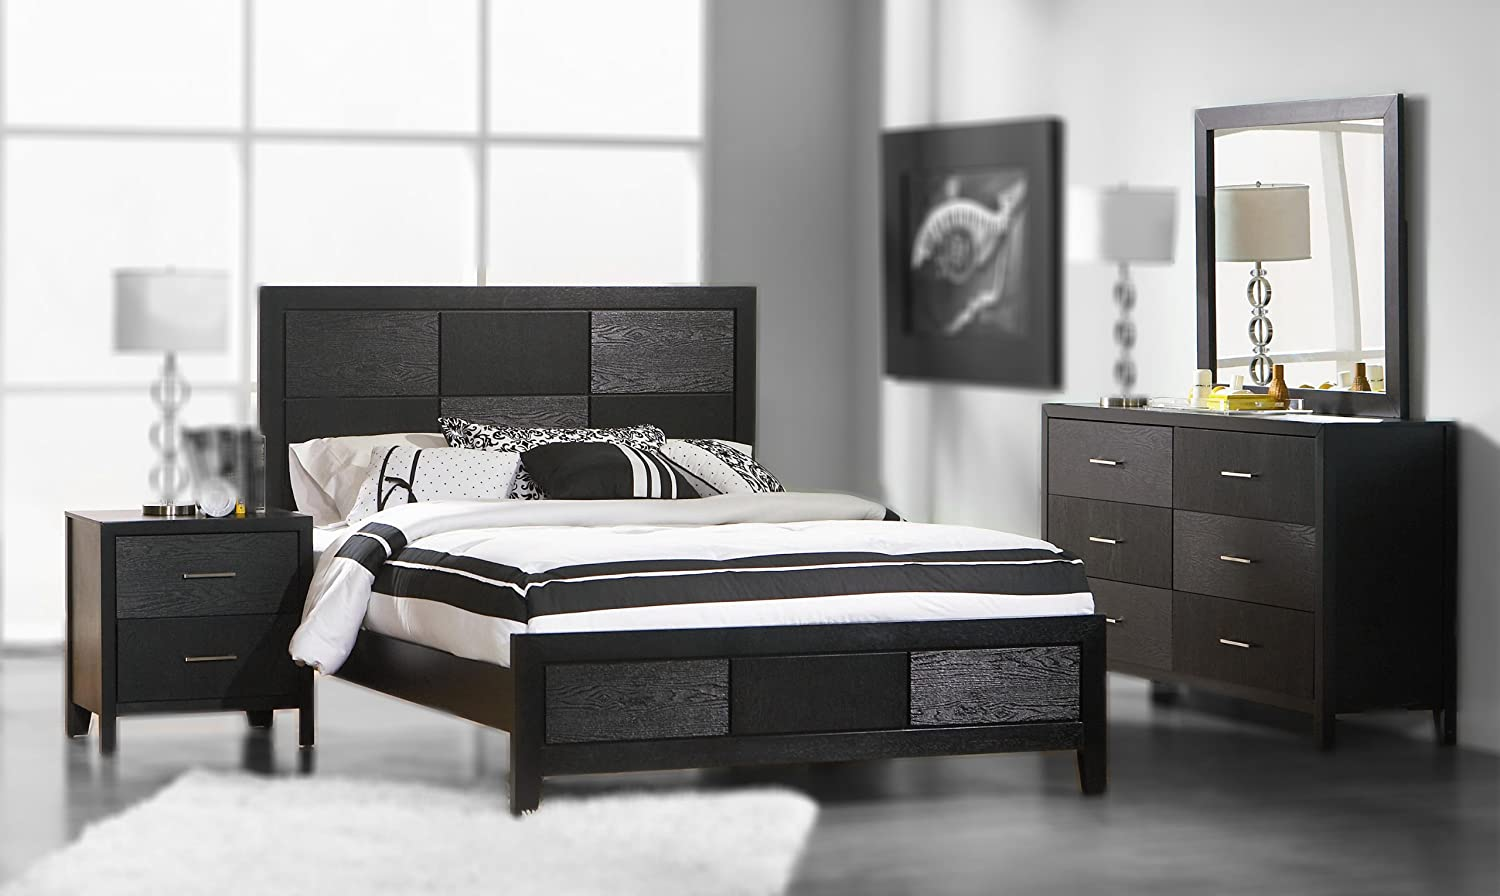 Amazon com 4pc king size bedroom set with wood grain in black finish kitchen dining